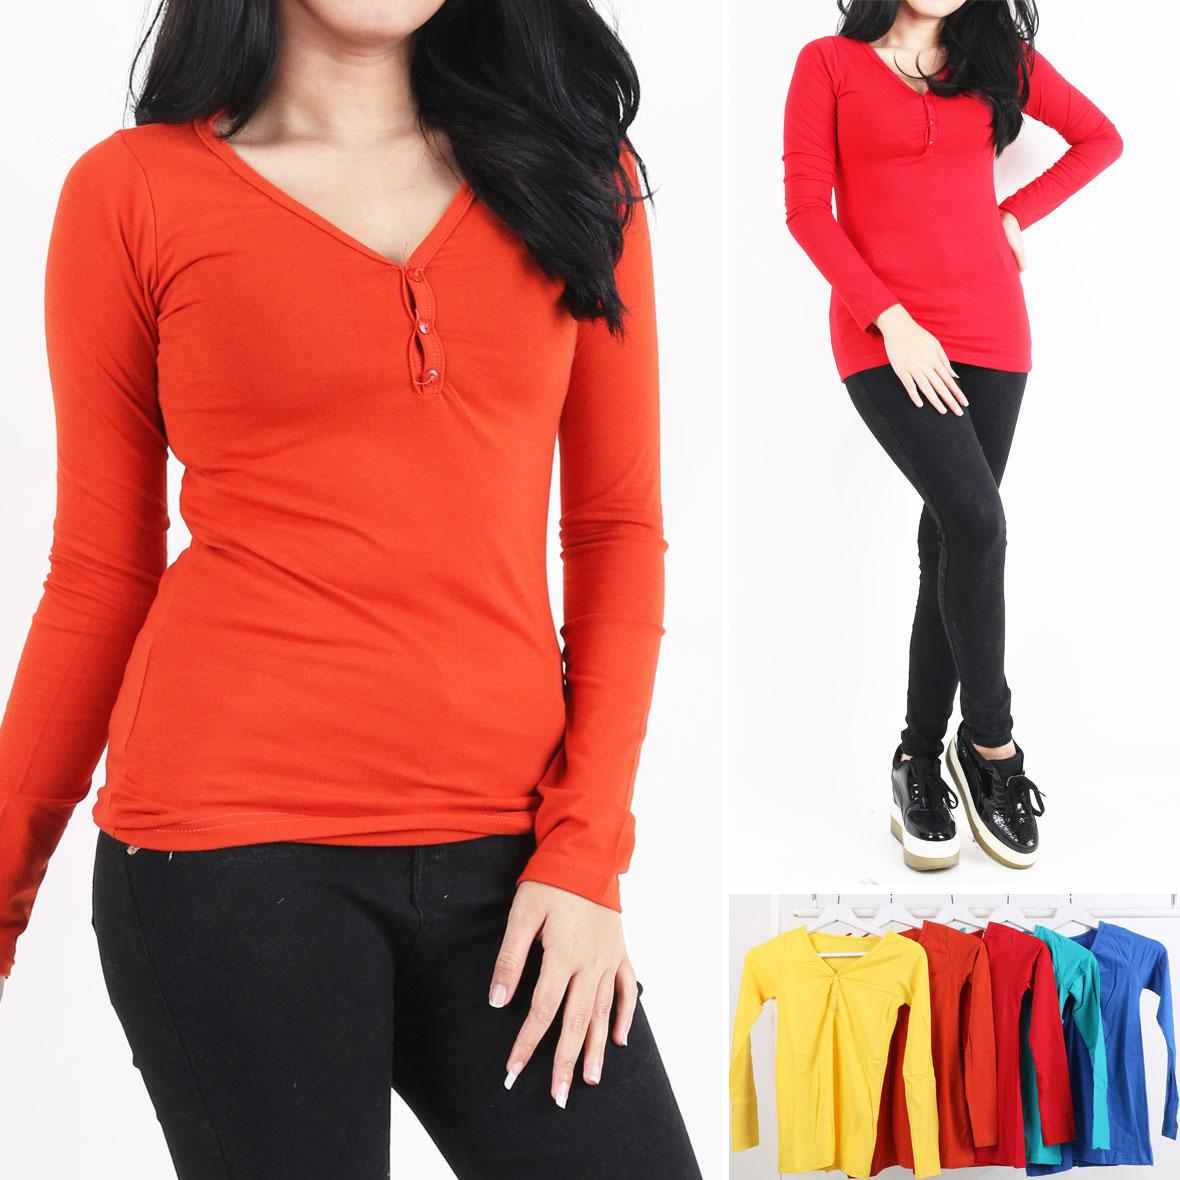 Oma Holley Fashion Ciprianne T-Shirt Long Sleeve 5 Warna-Size M